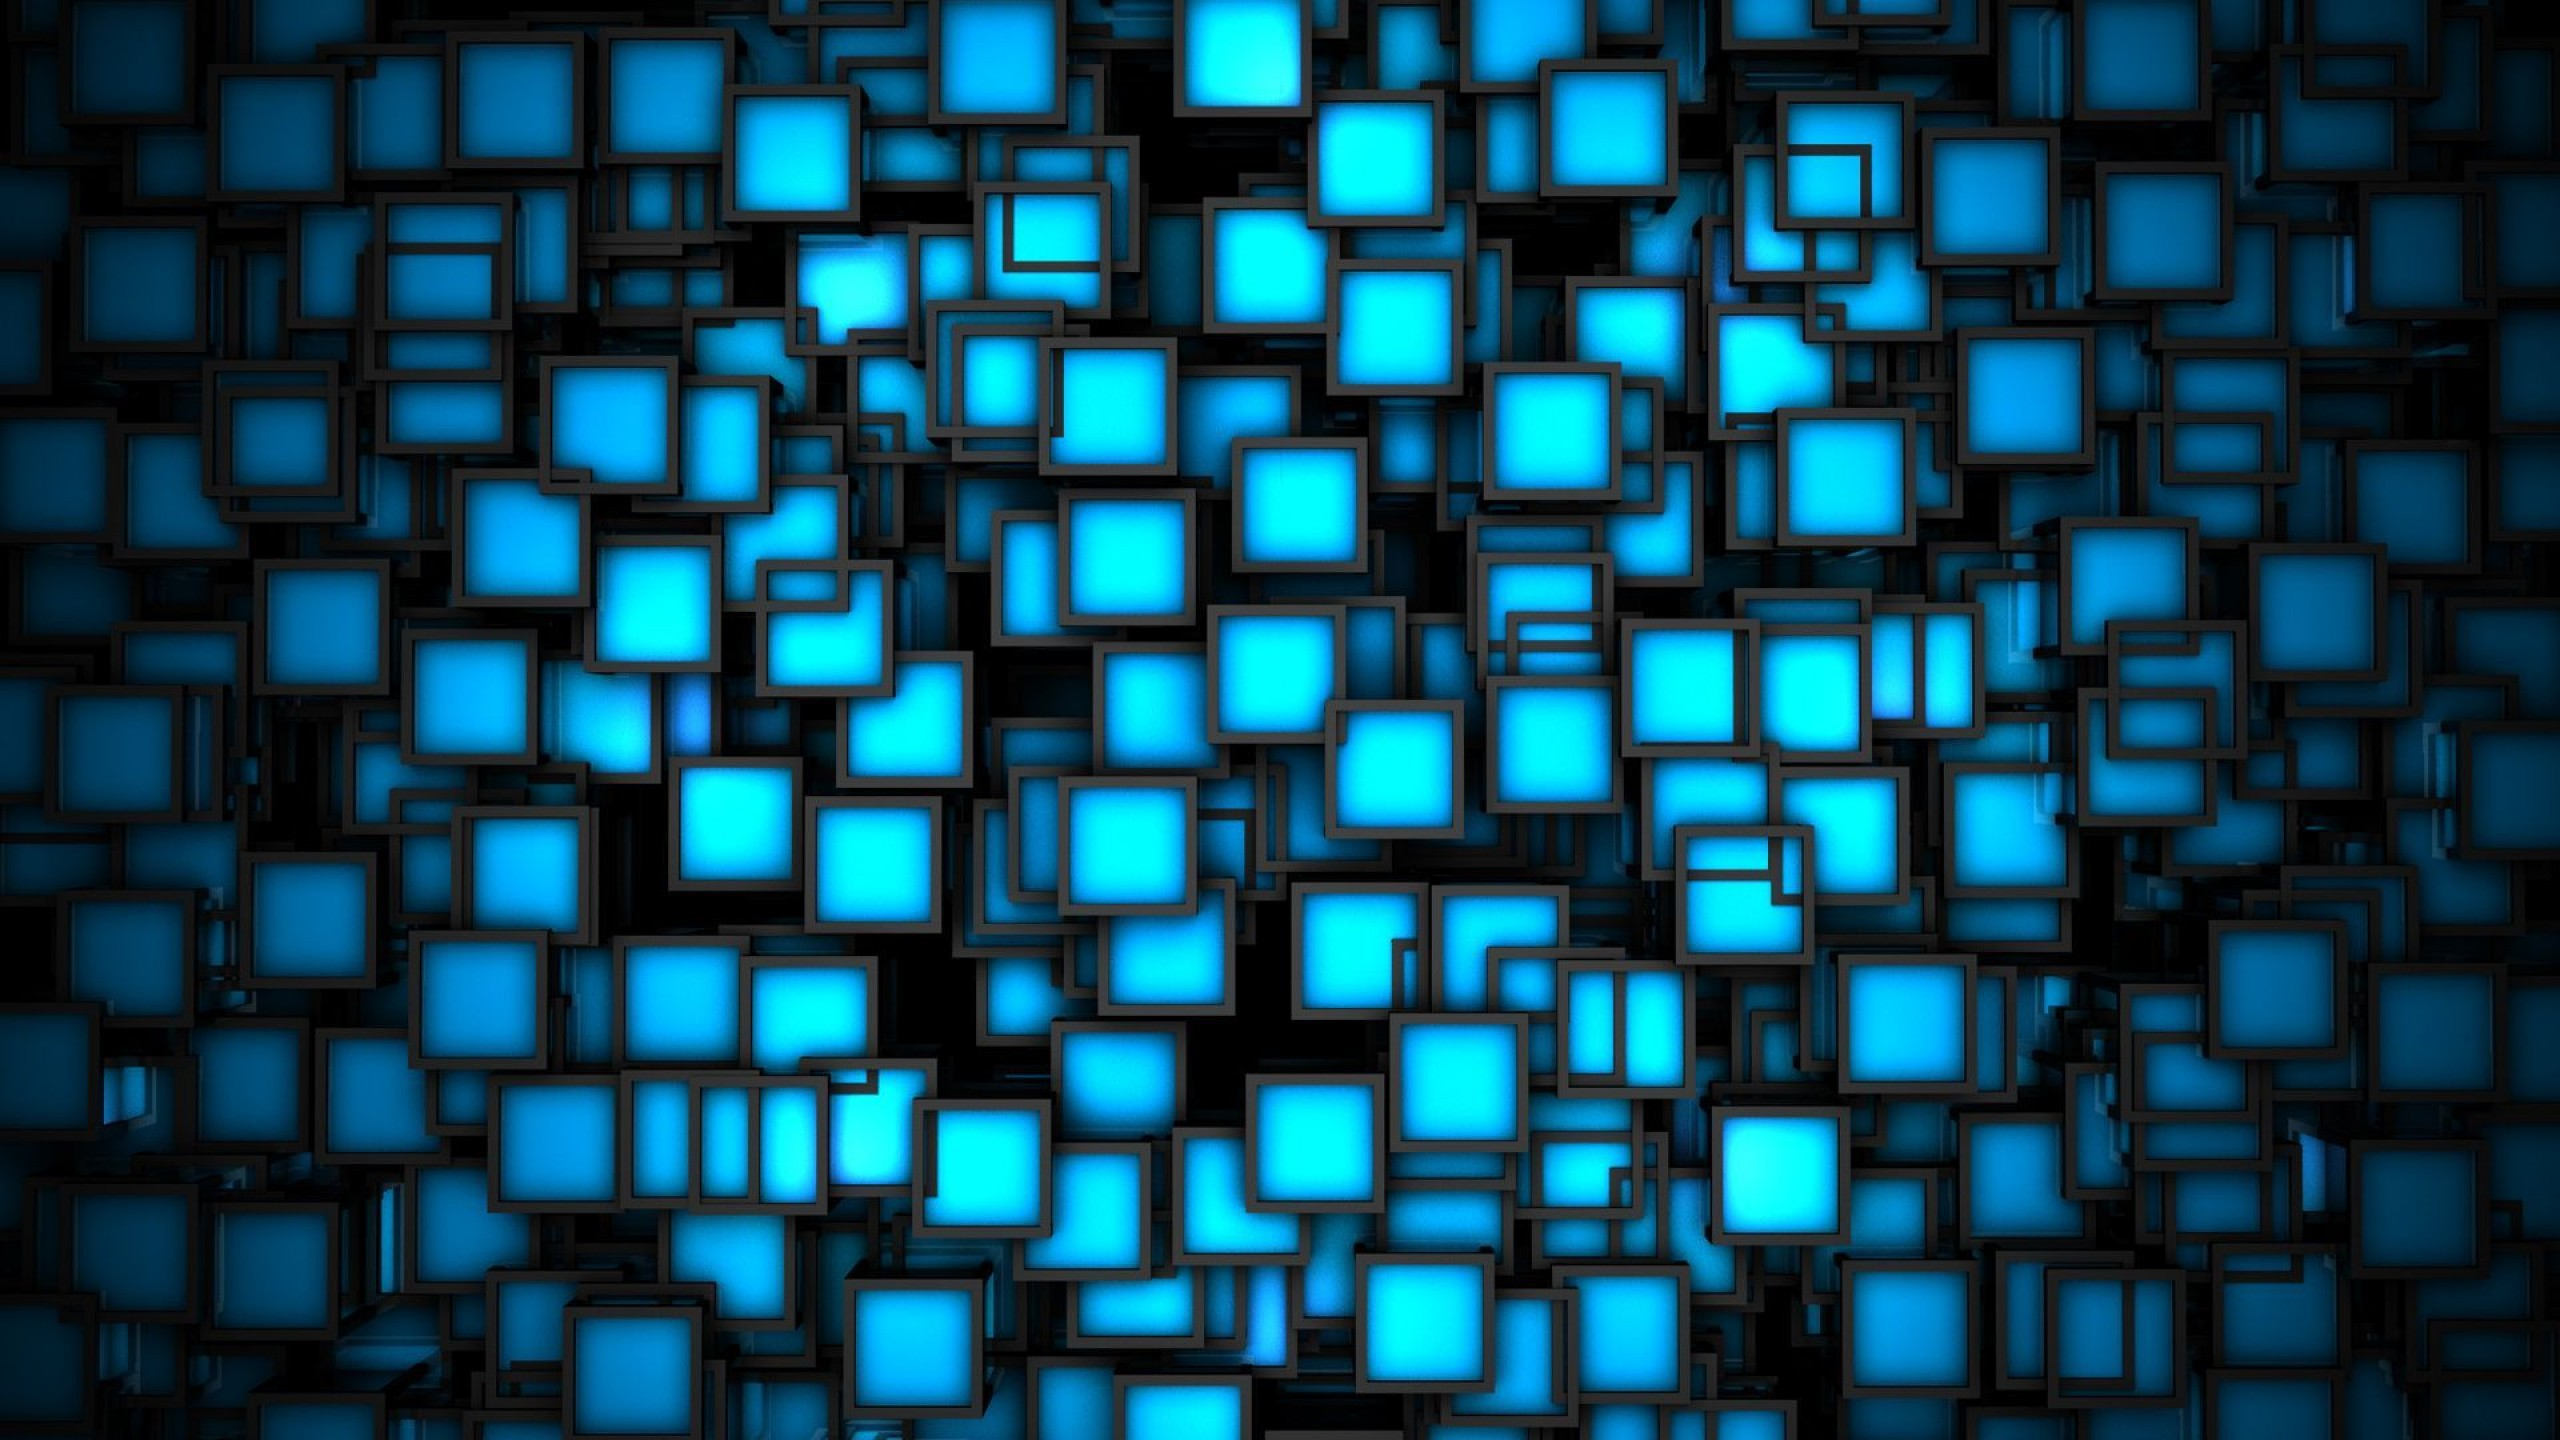 Wallpaper 3D Blue